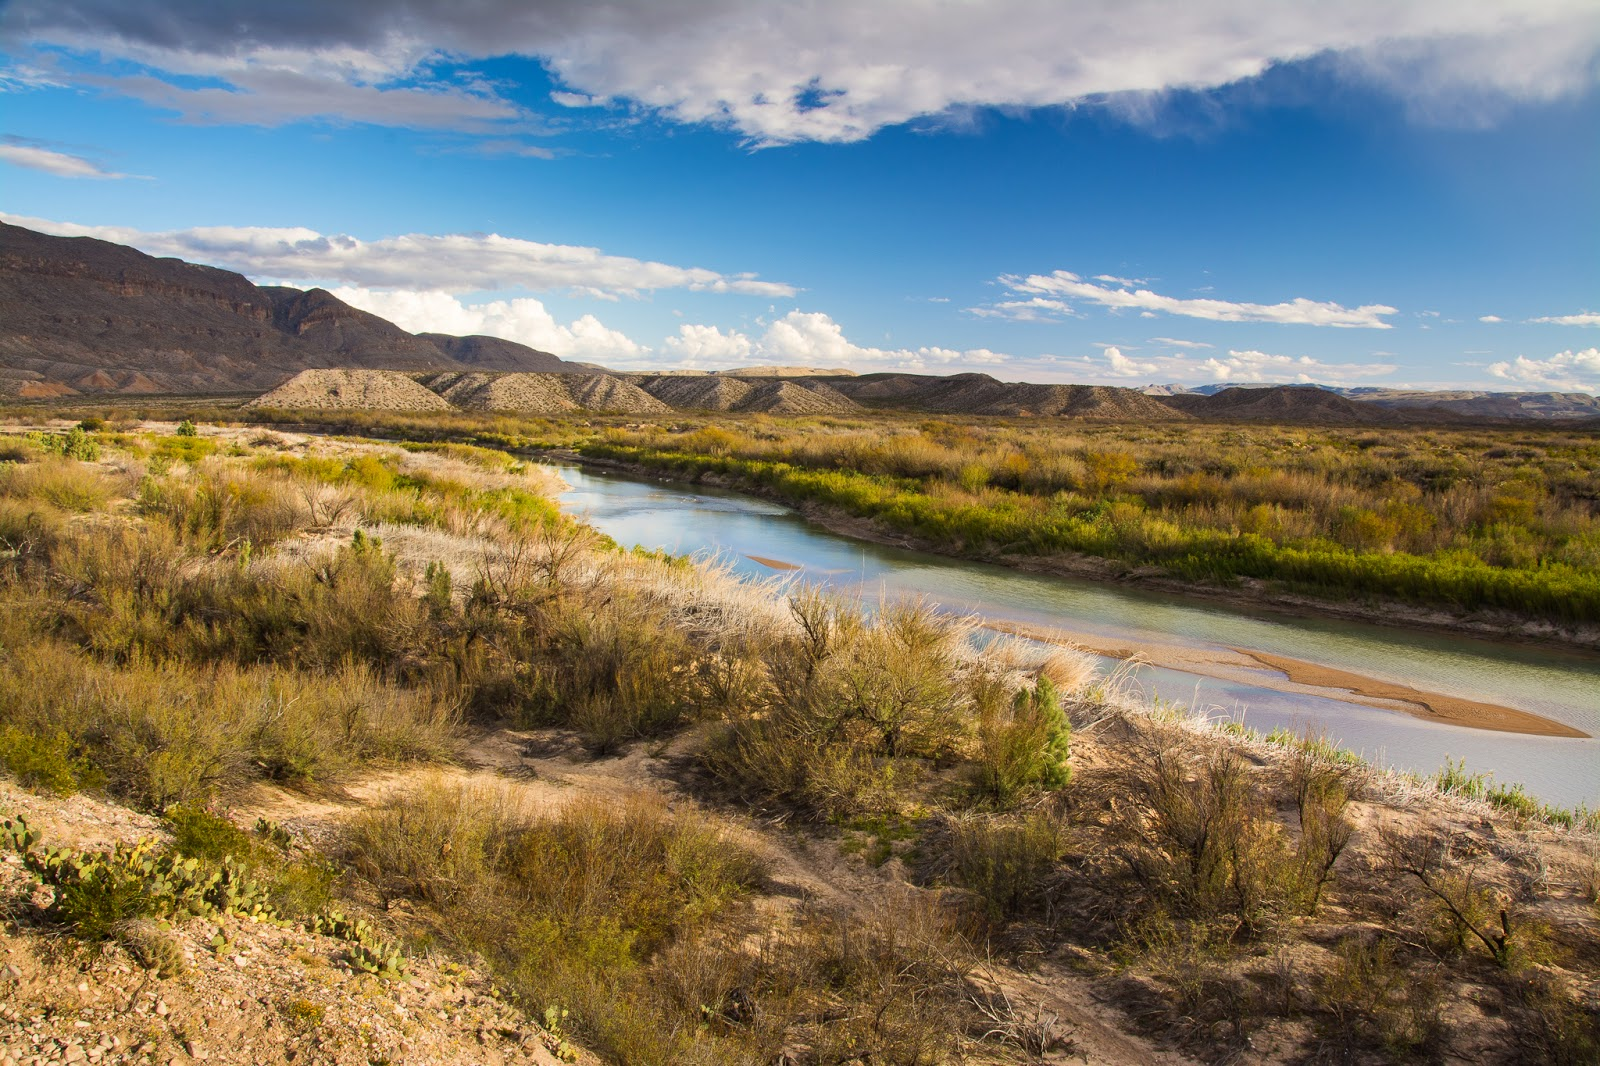 Rio Grande near Boquillas Crossing